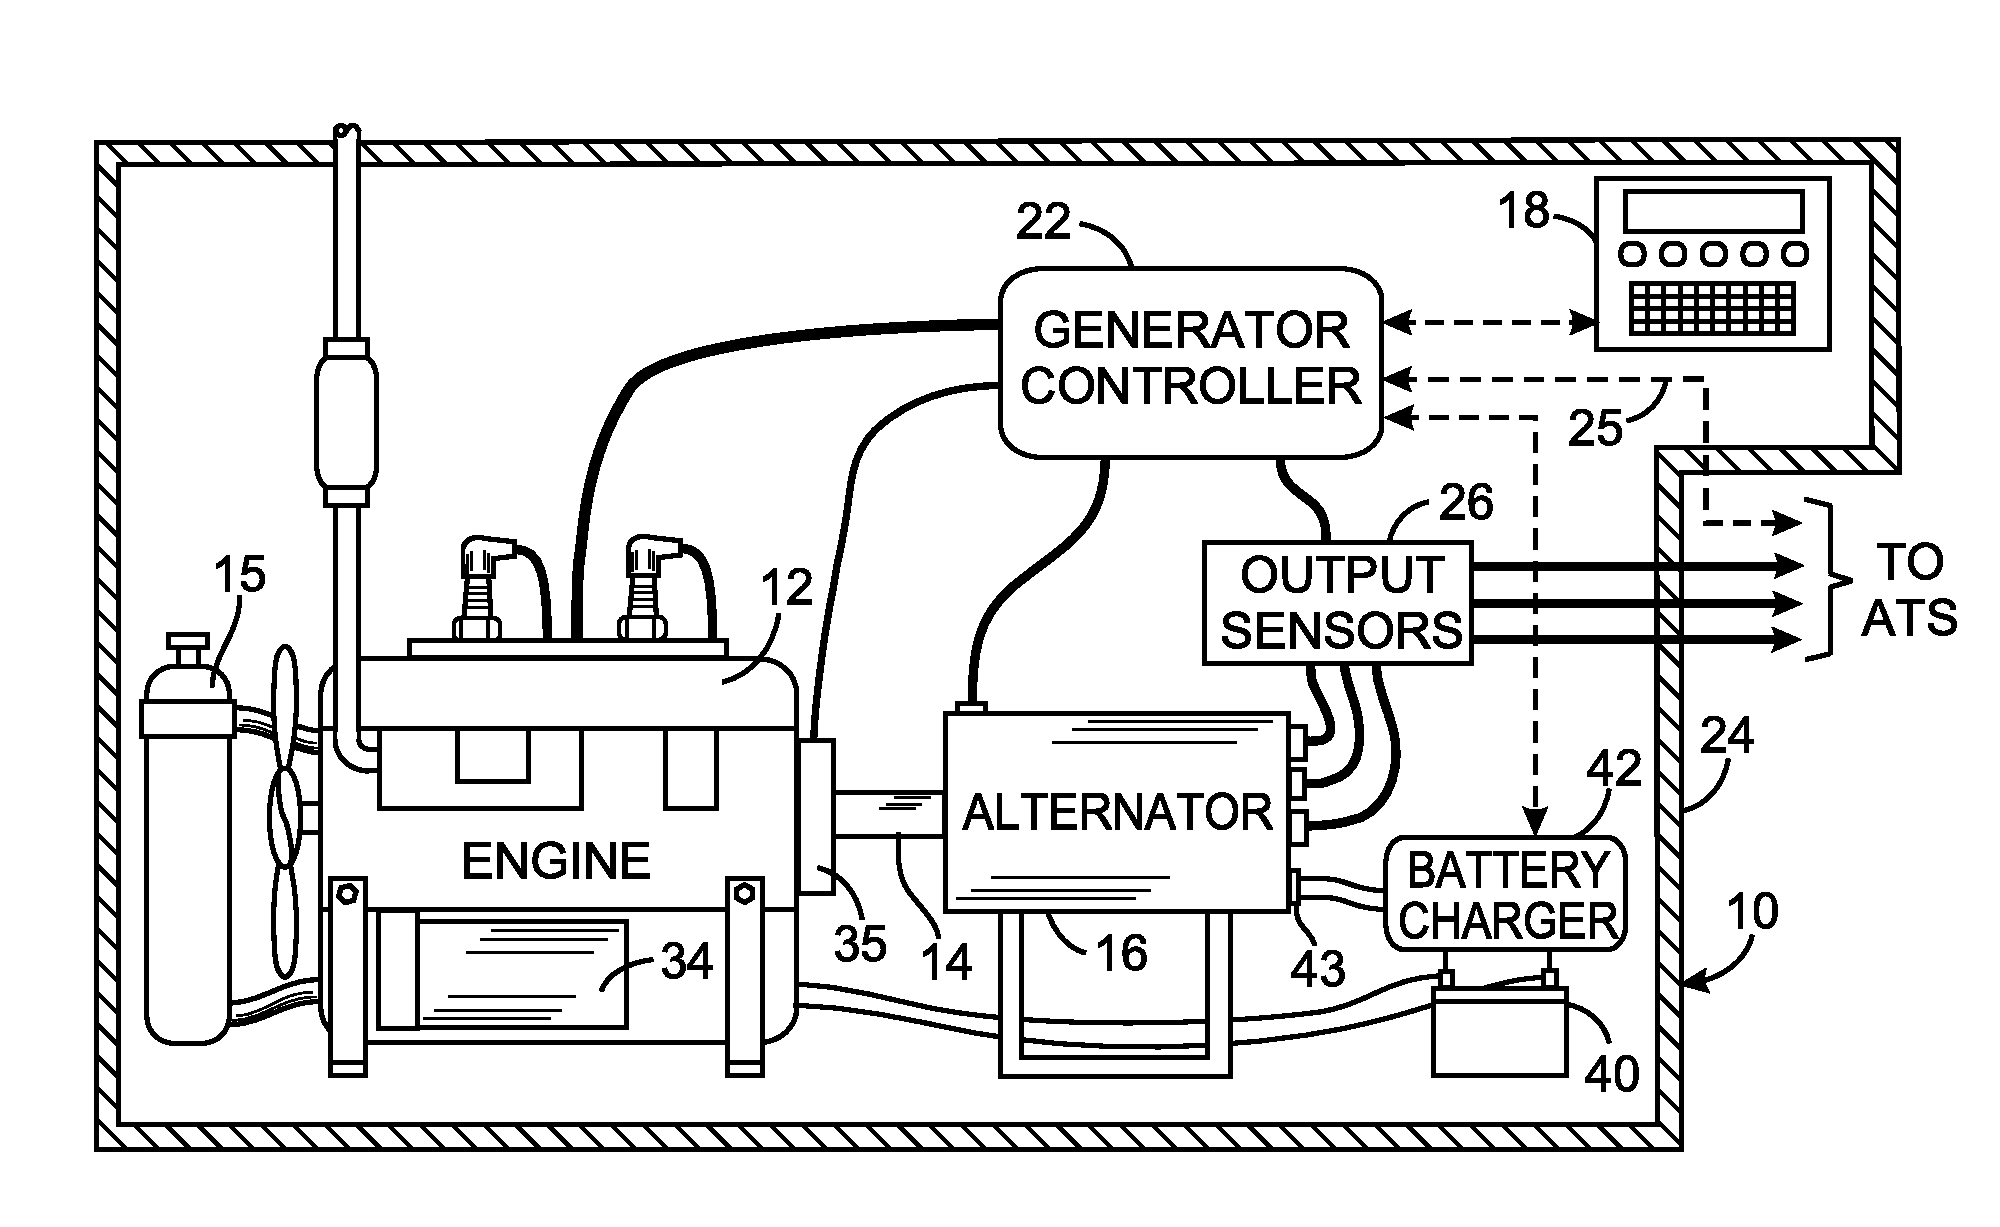 Access Generator Control Panel Wiring Diagram